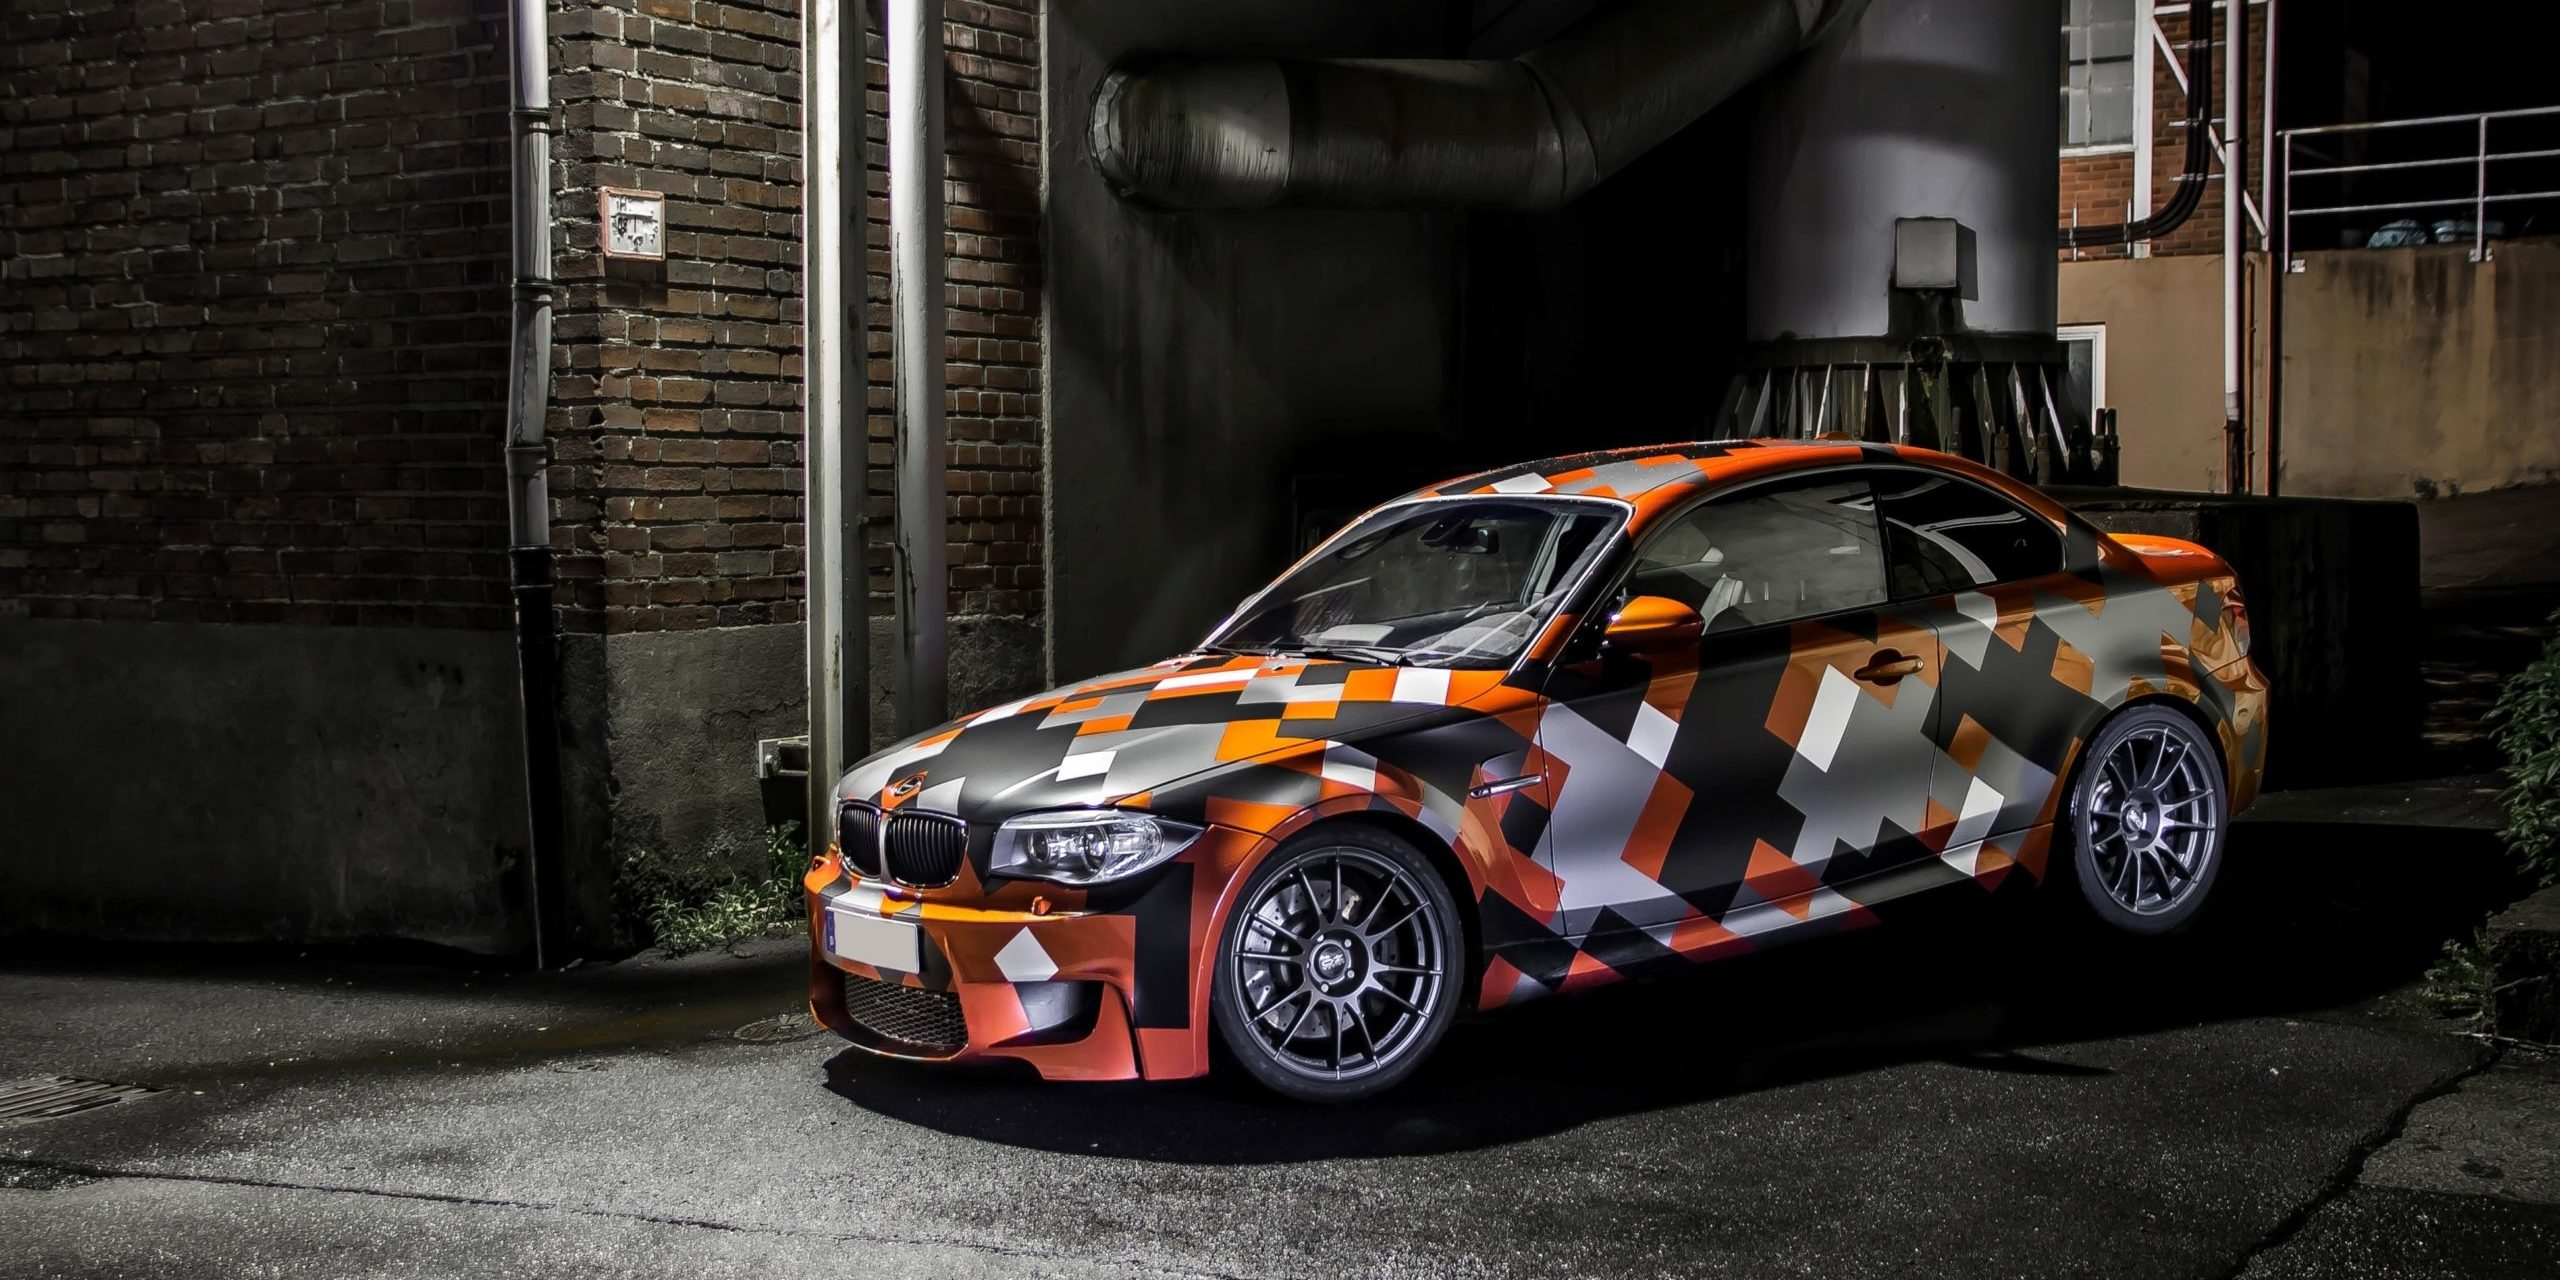 Car Wrap Vs Paint The Pros And Cons Accurate Signs